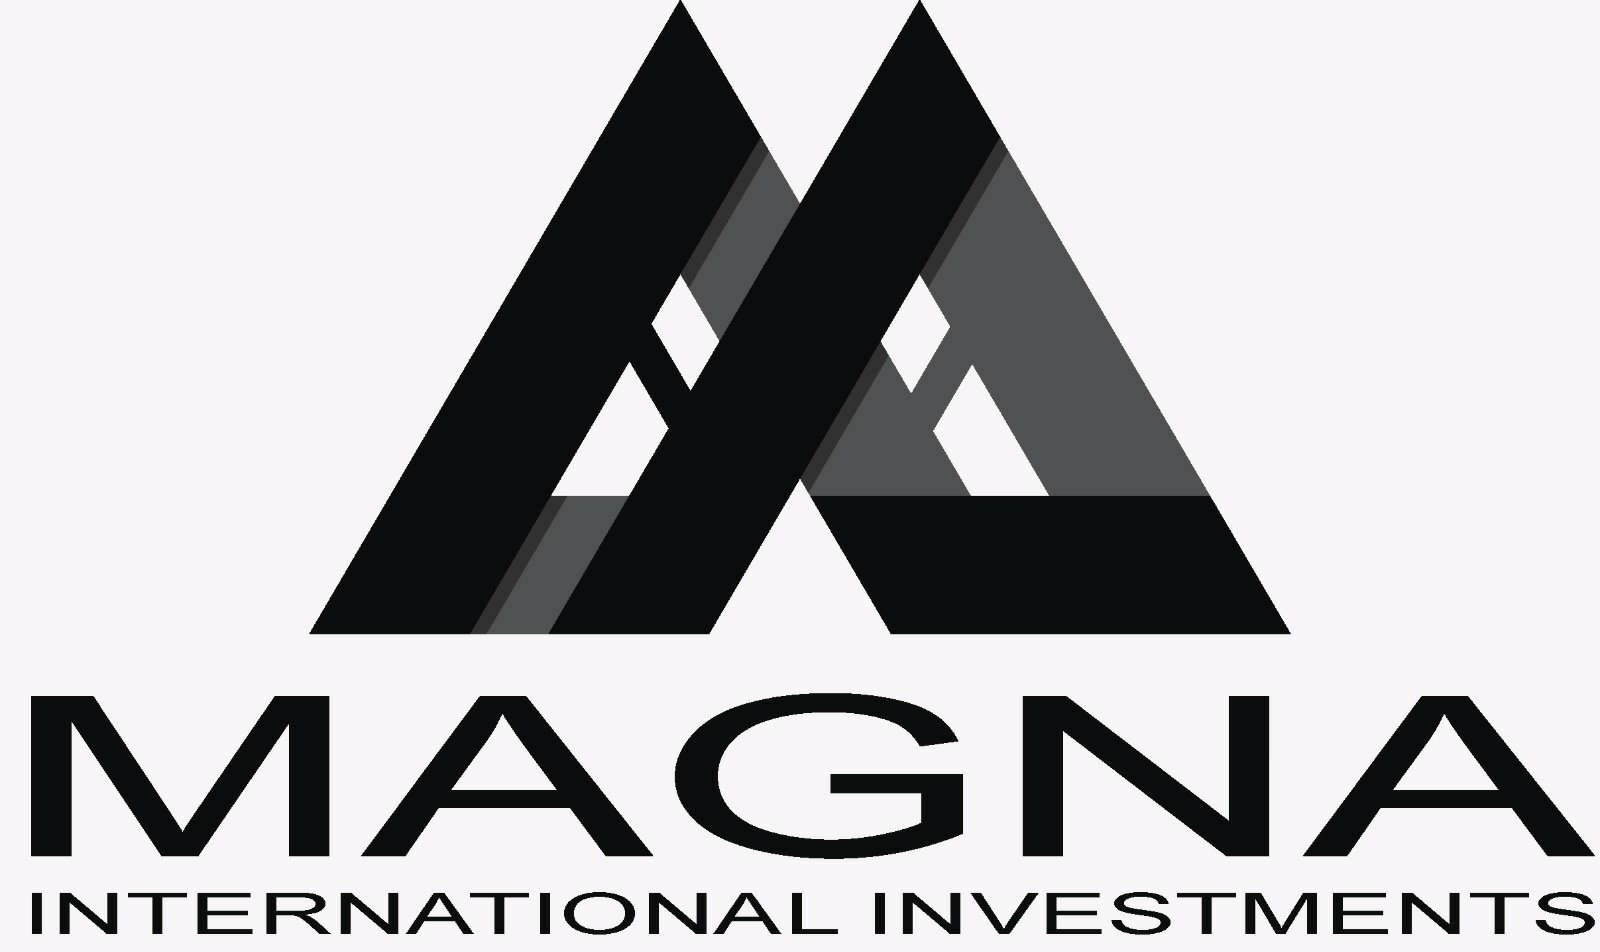 Magna investment llc core real estate investment strategy